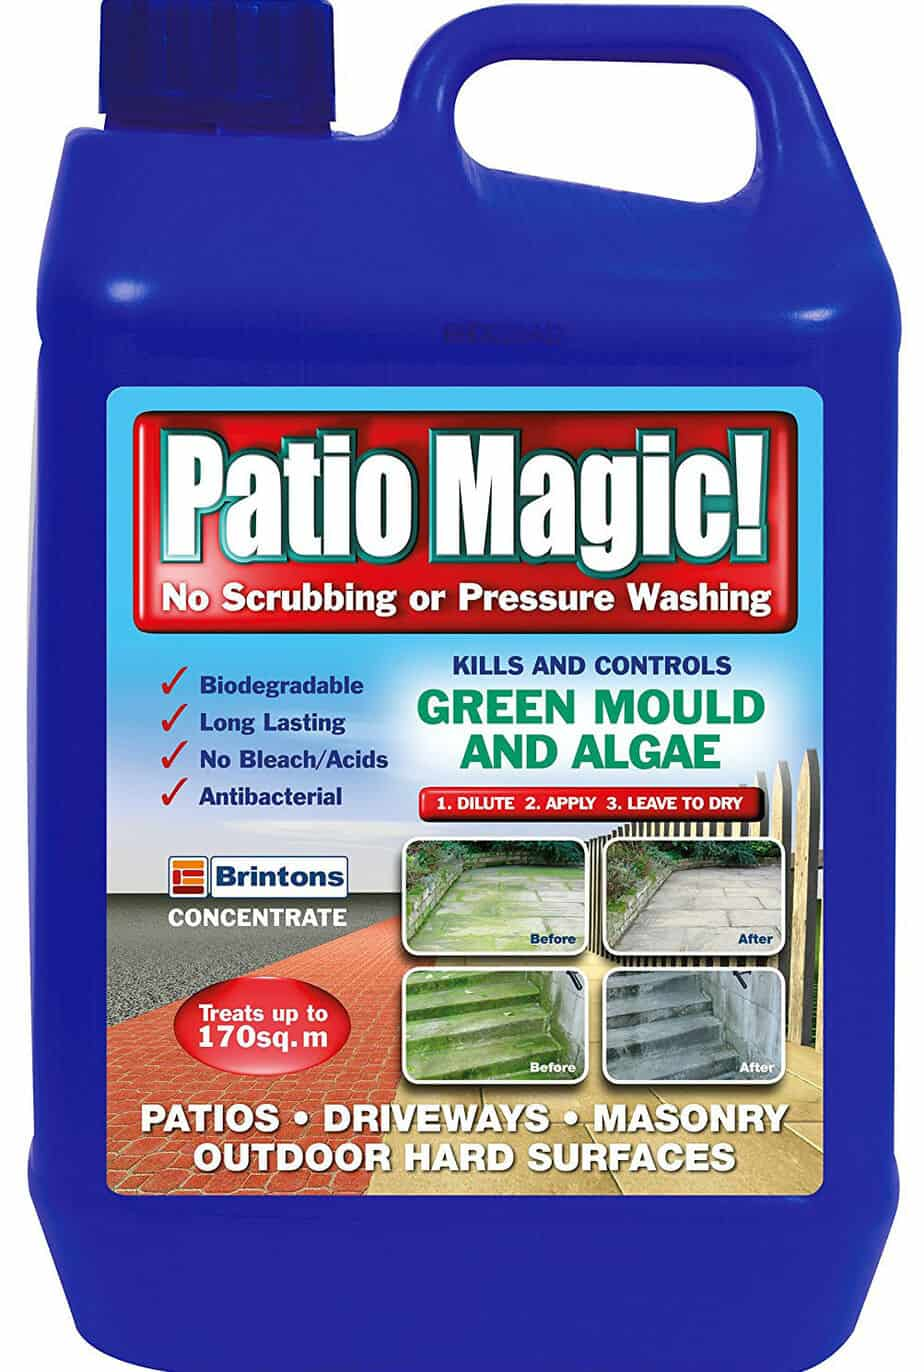 Patio Magic 5 Litre Green Mould and Algae Killer Liquid Concentrate Bottle Review